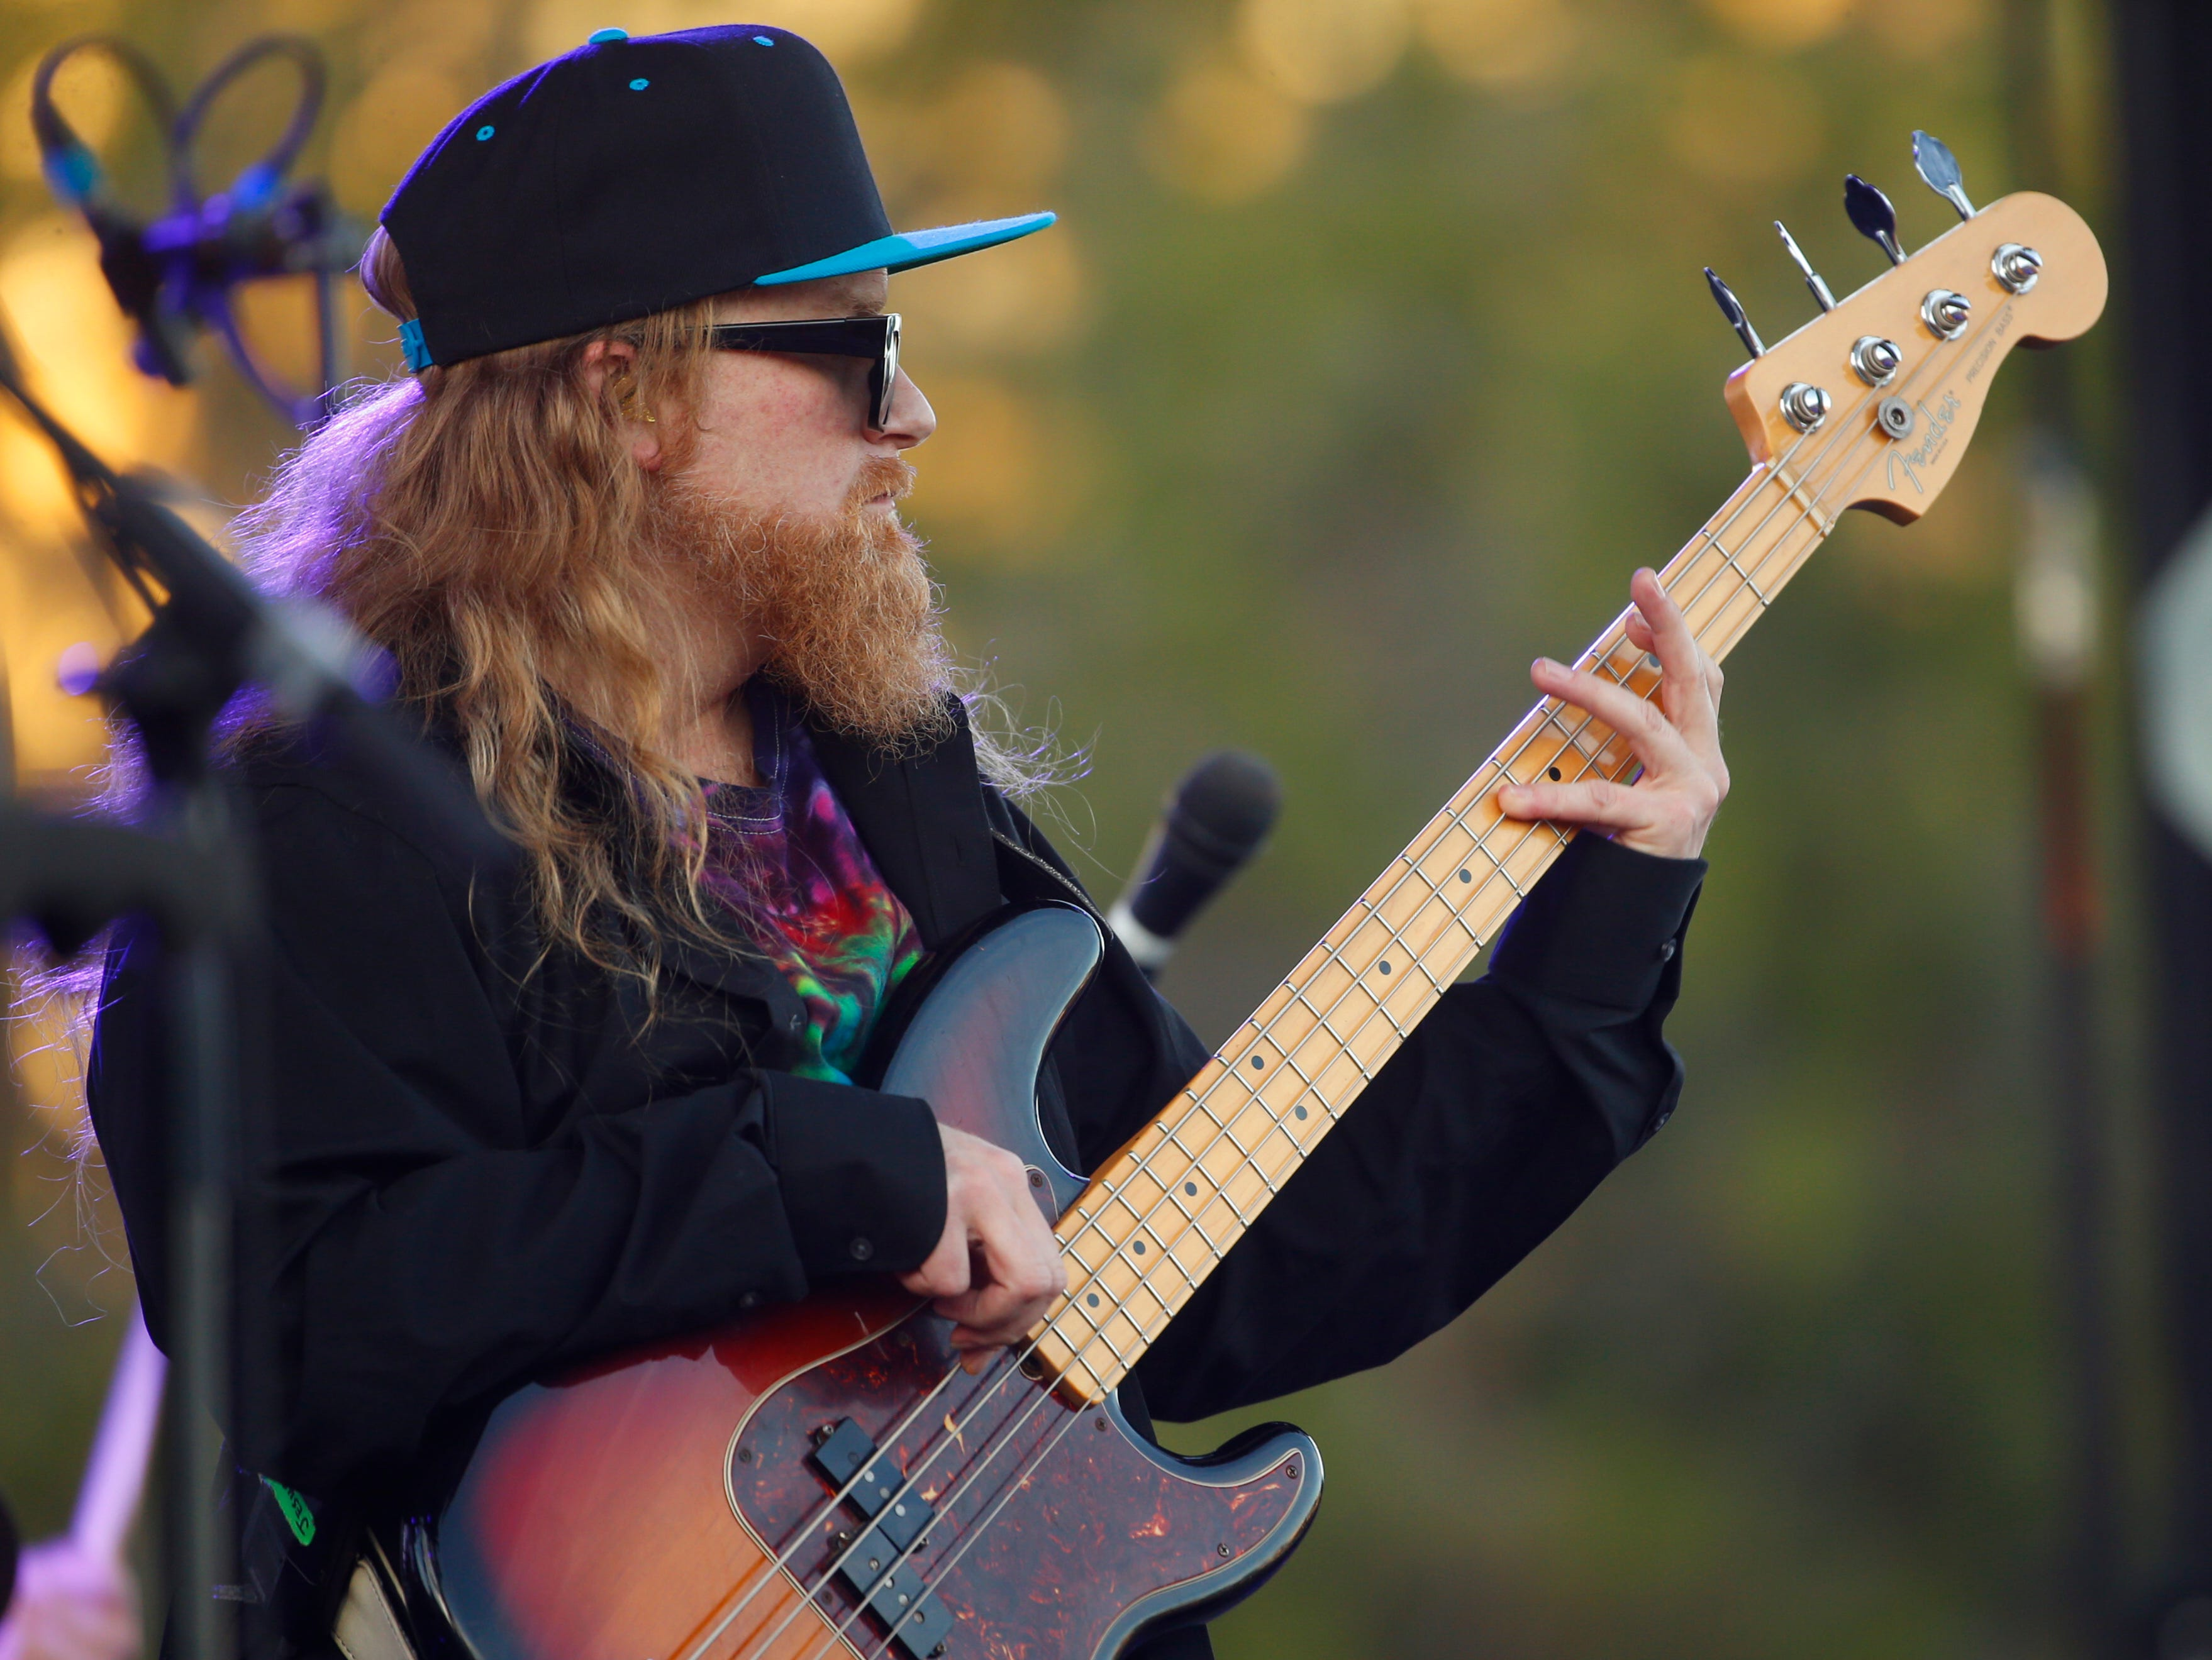 Lettuce performs during McDowell Mountain Music Festival in Phoenix on March 3, 2019.